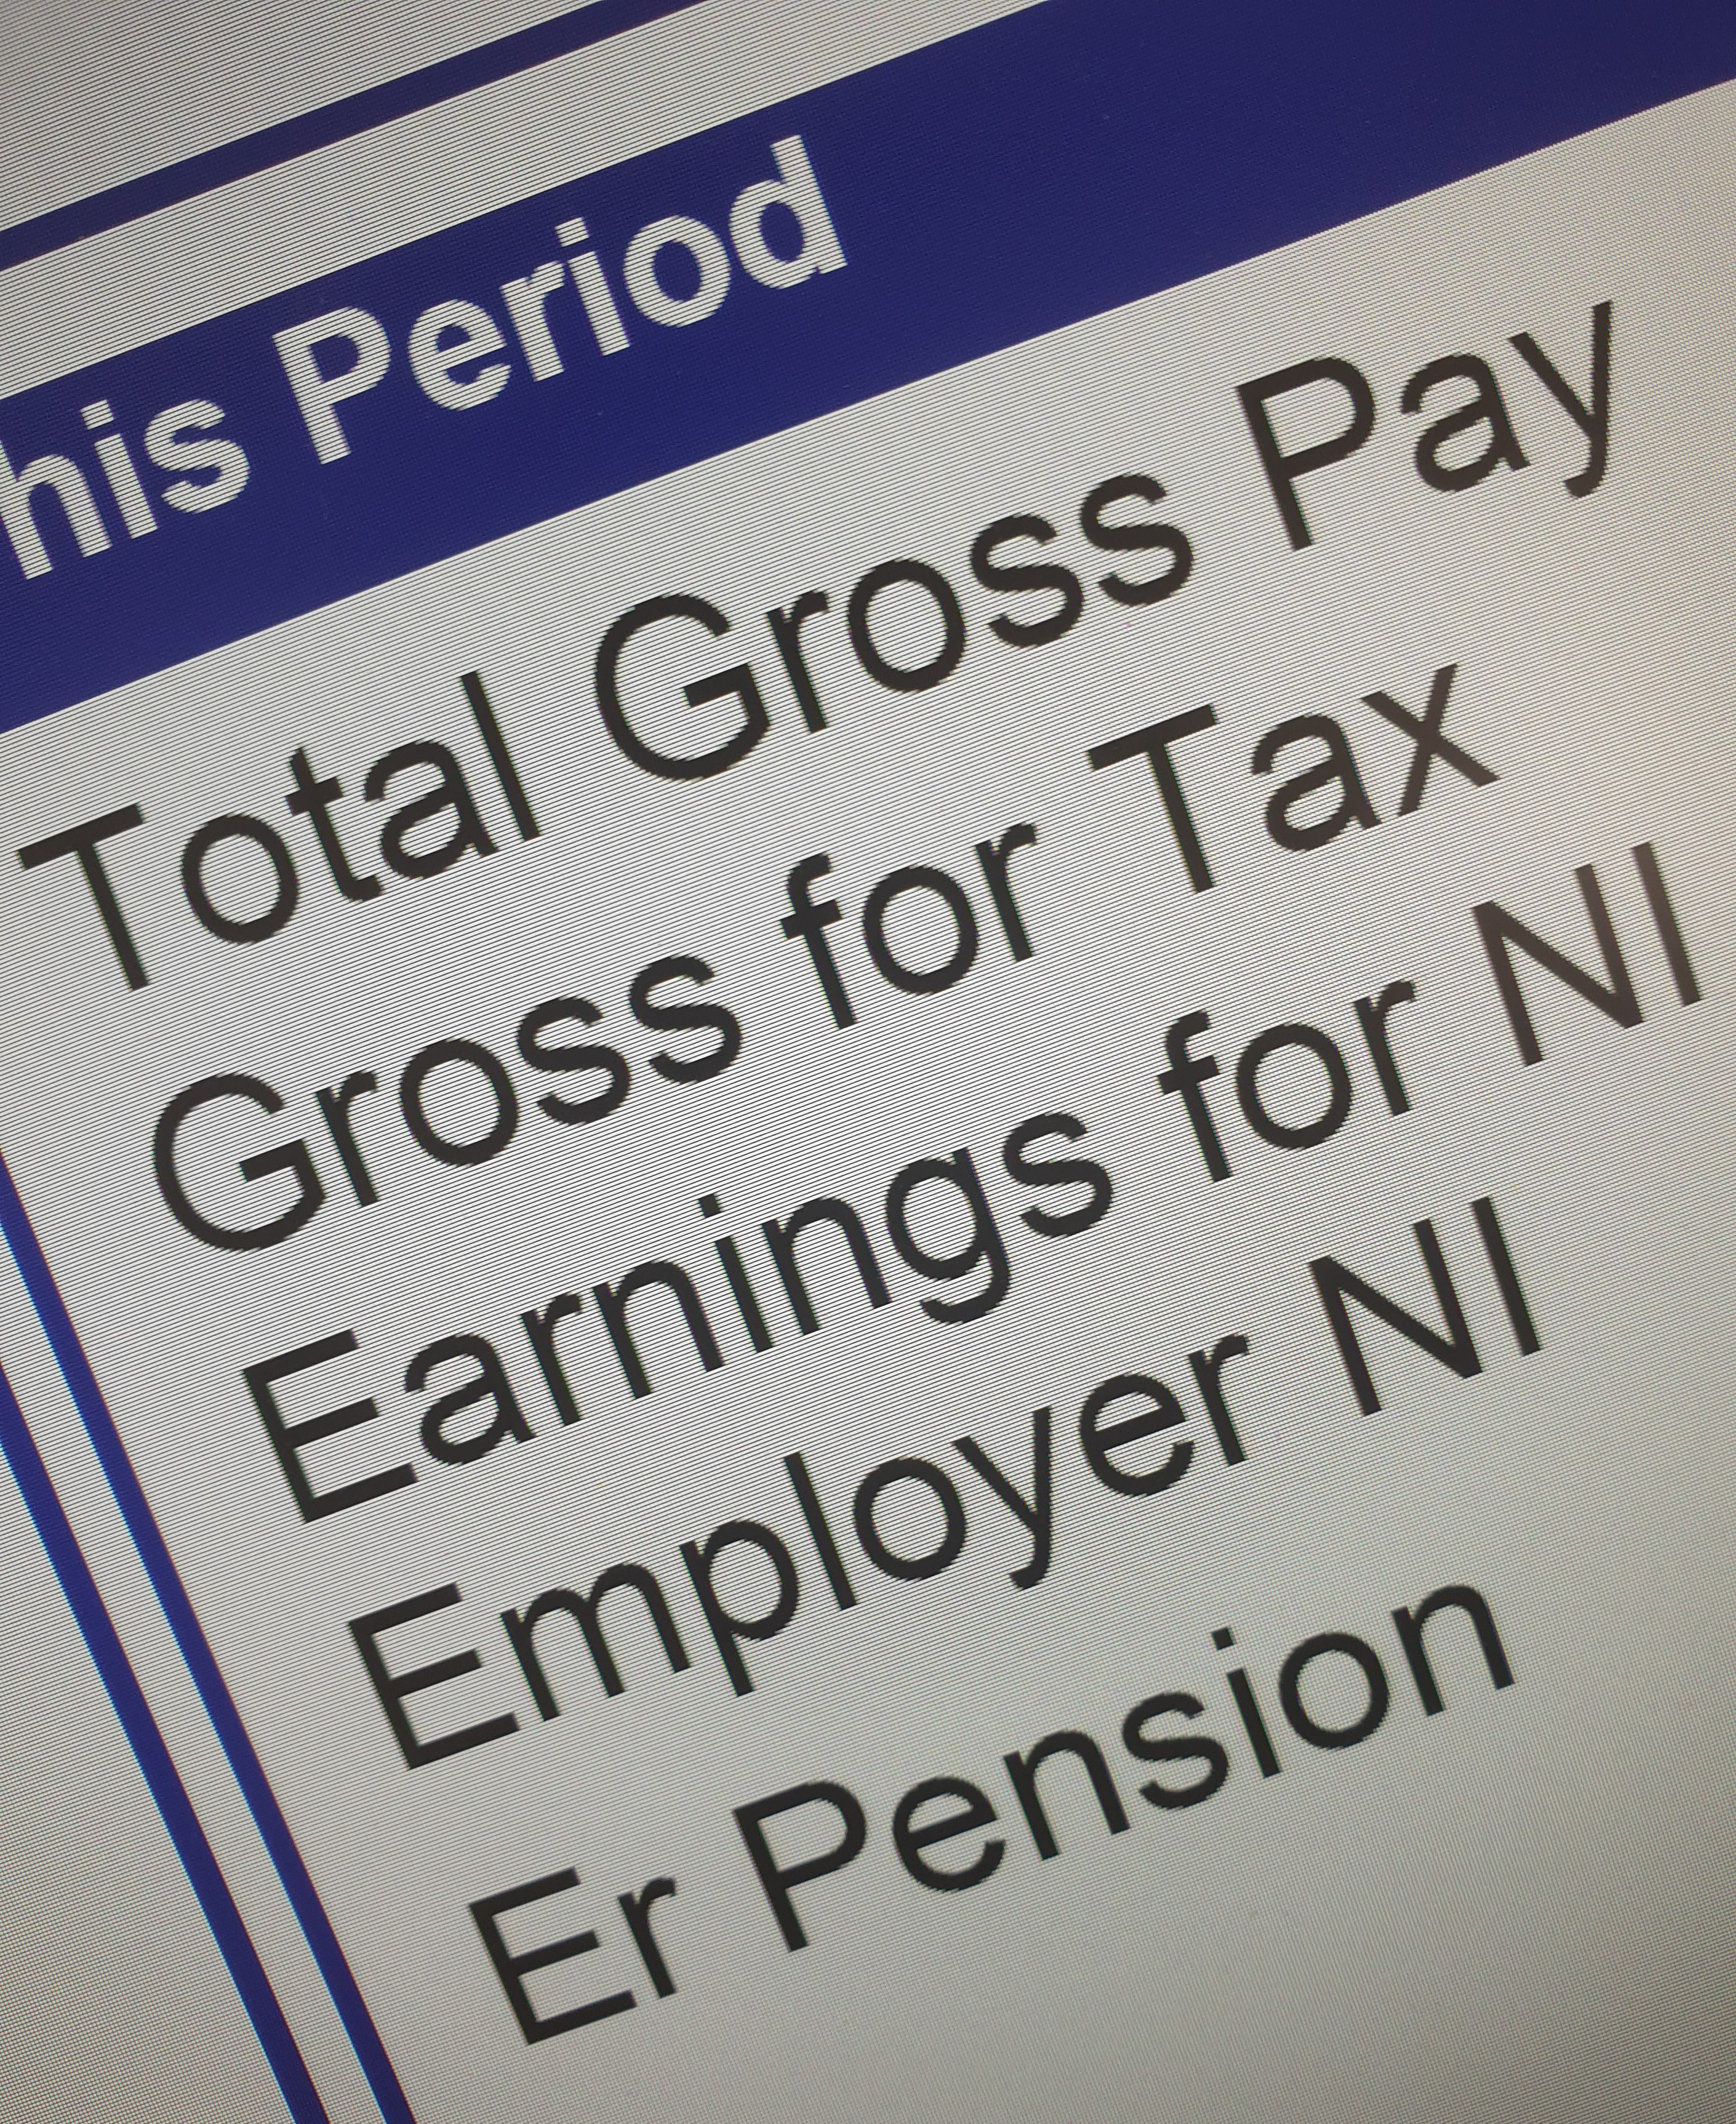 New payslip rules come into force for employers